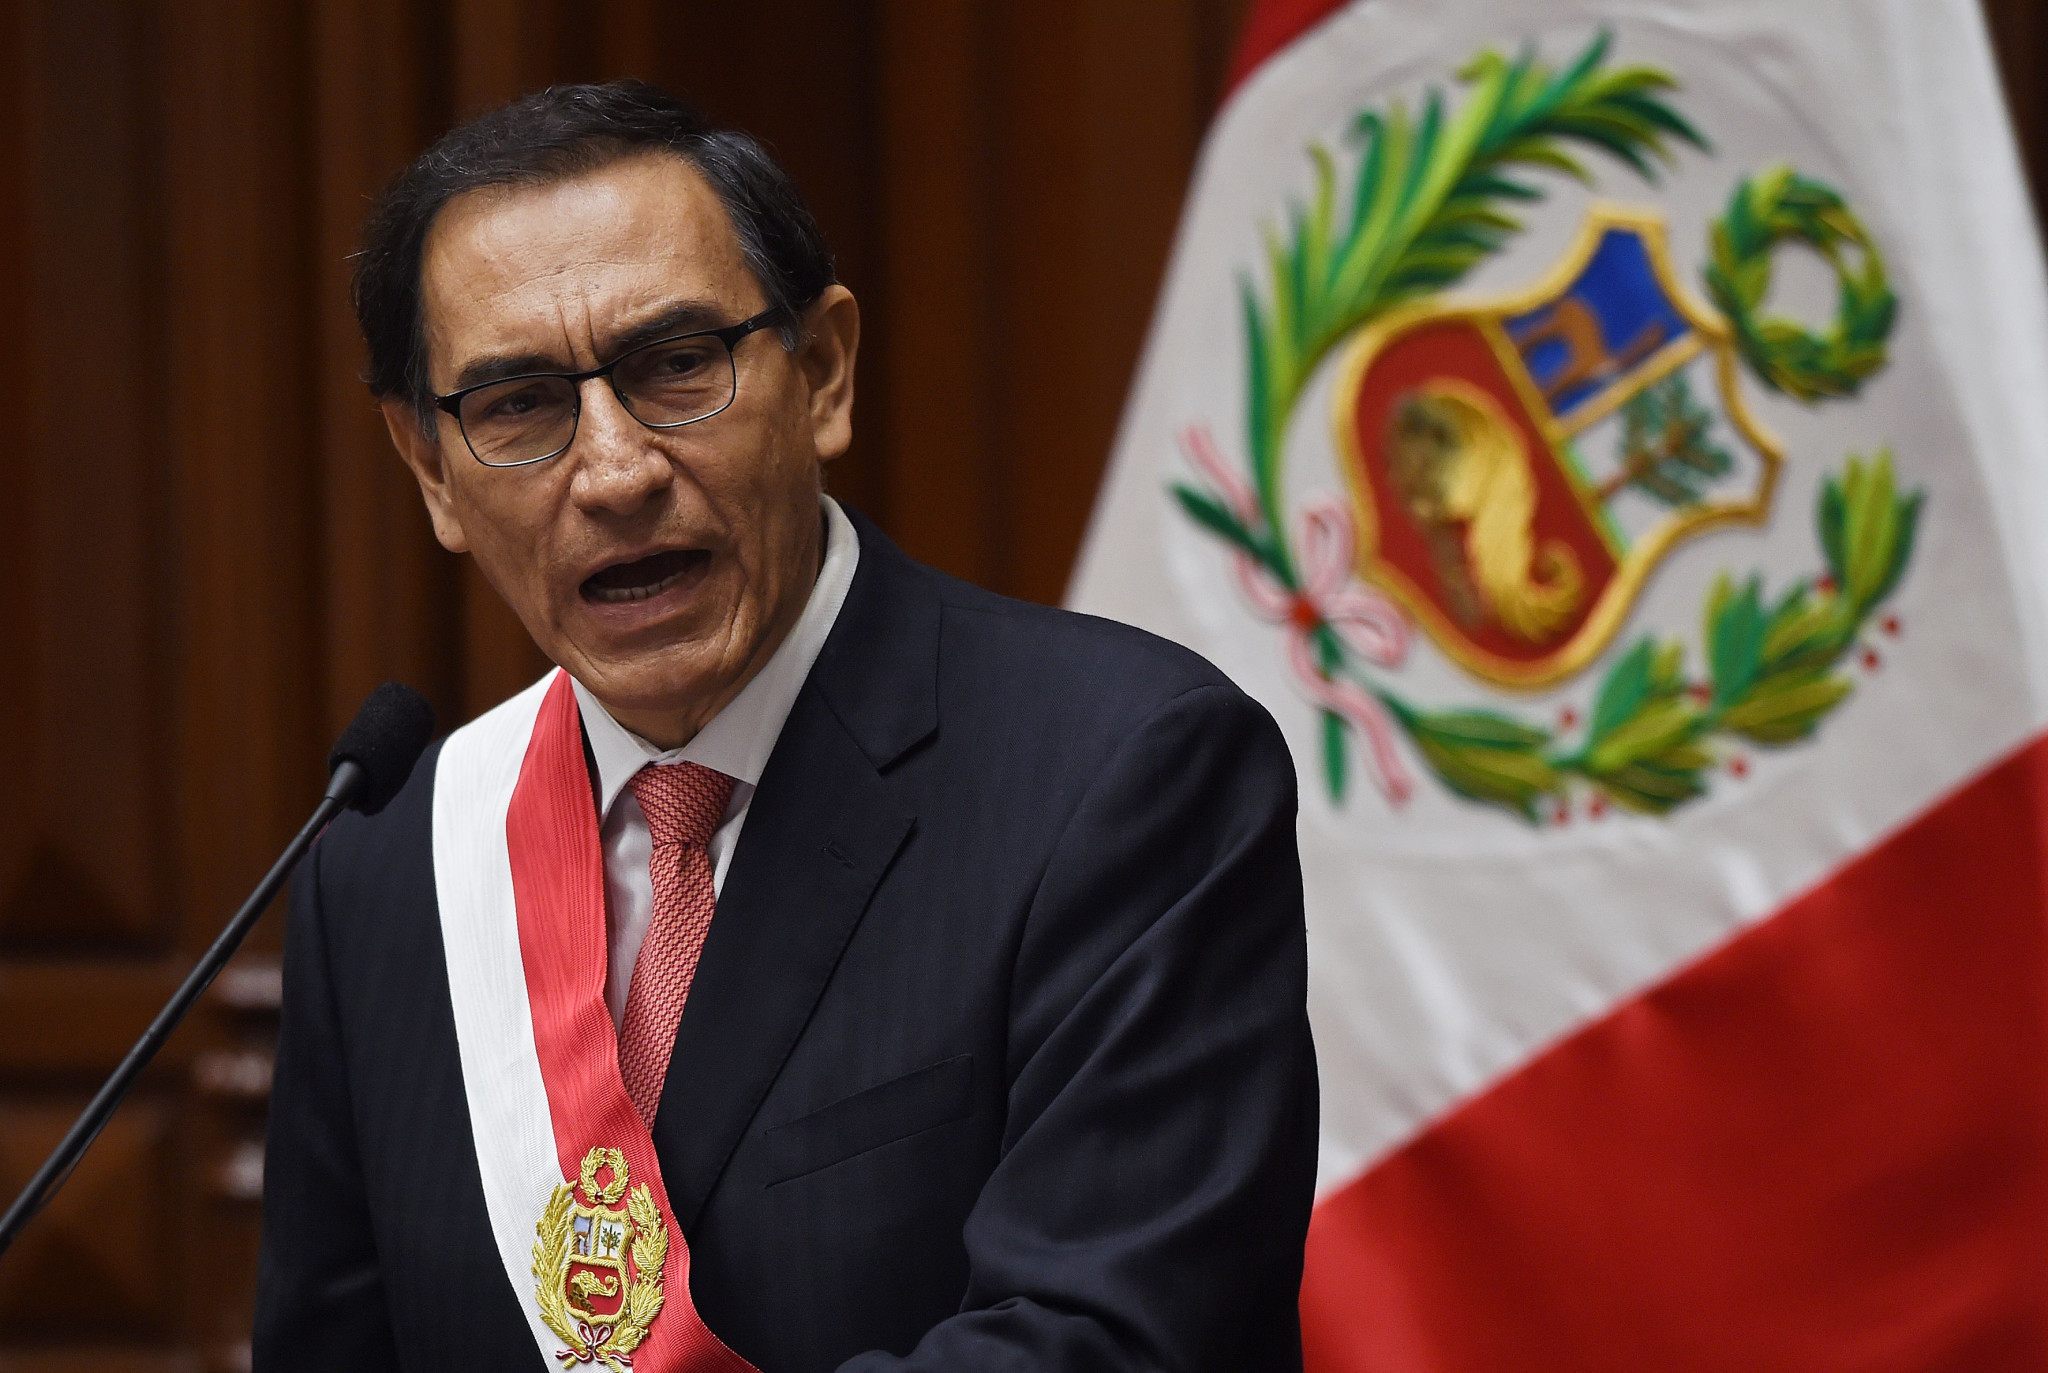 President Martín Vizcarra Cornejo assumed office last month ©Getty Images